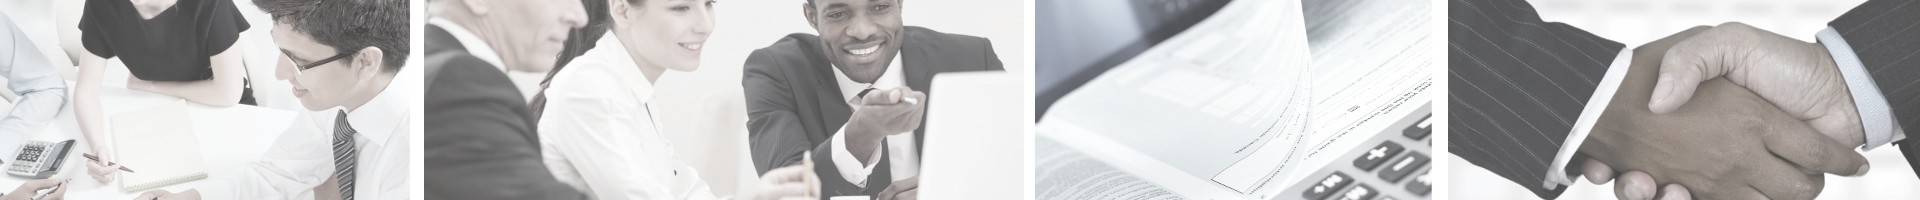 YHW Management Services and Consulting for Small Business